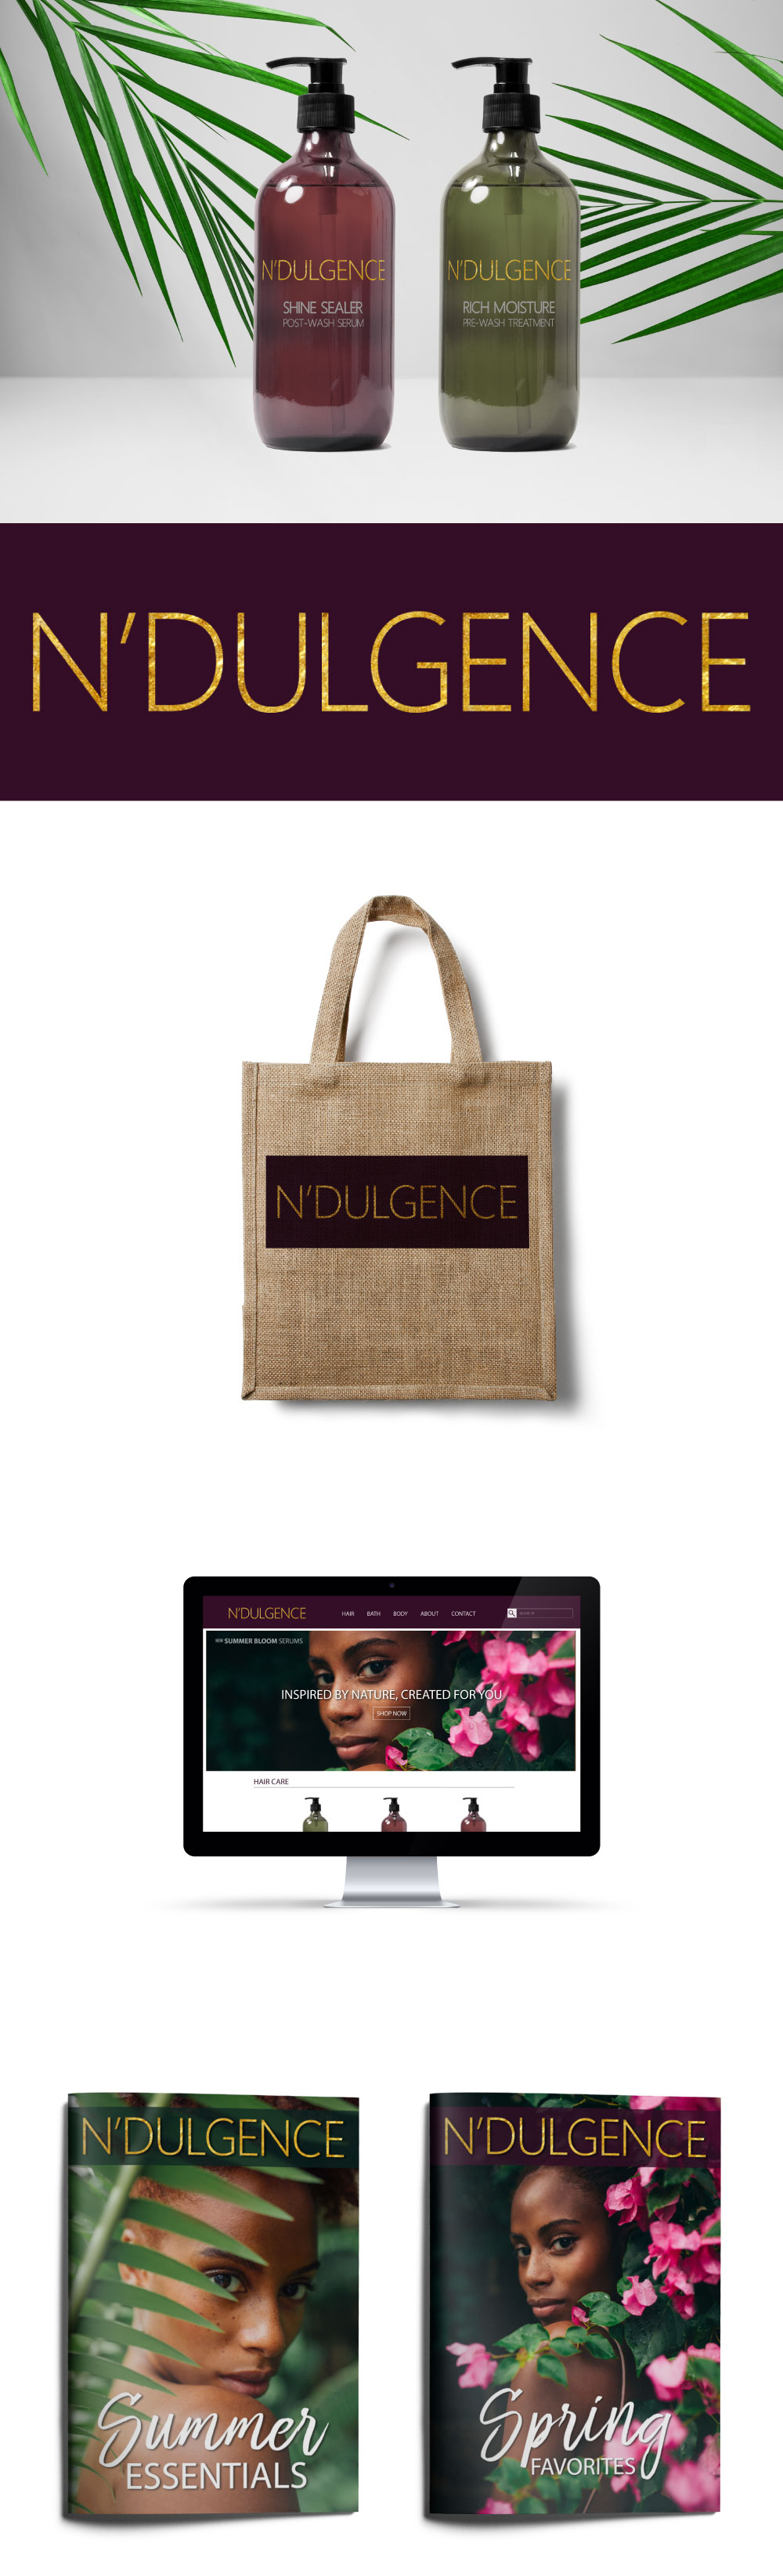 N'dulgence-Logo-Design-and-Branding-project-by-Tracey-Renee-Hubbard